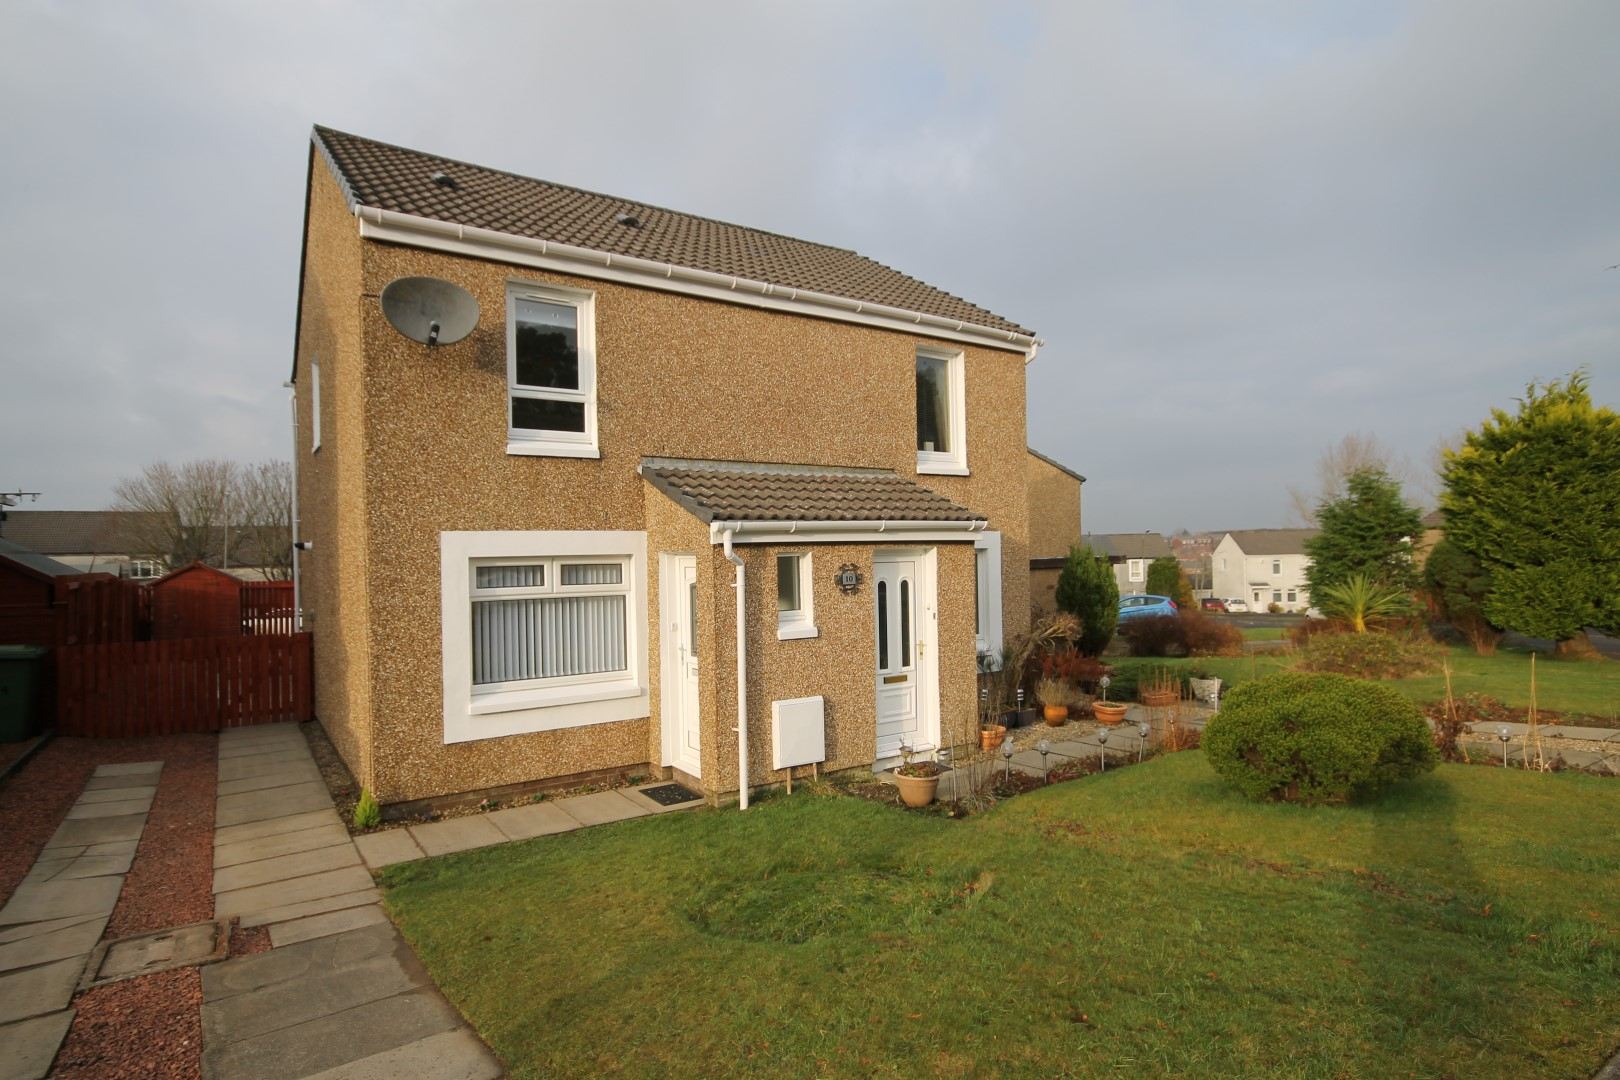 EAST KILBRIDE – 2 Bedroom Semi-Detached